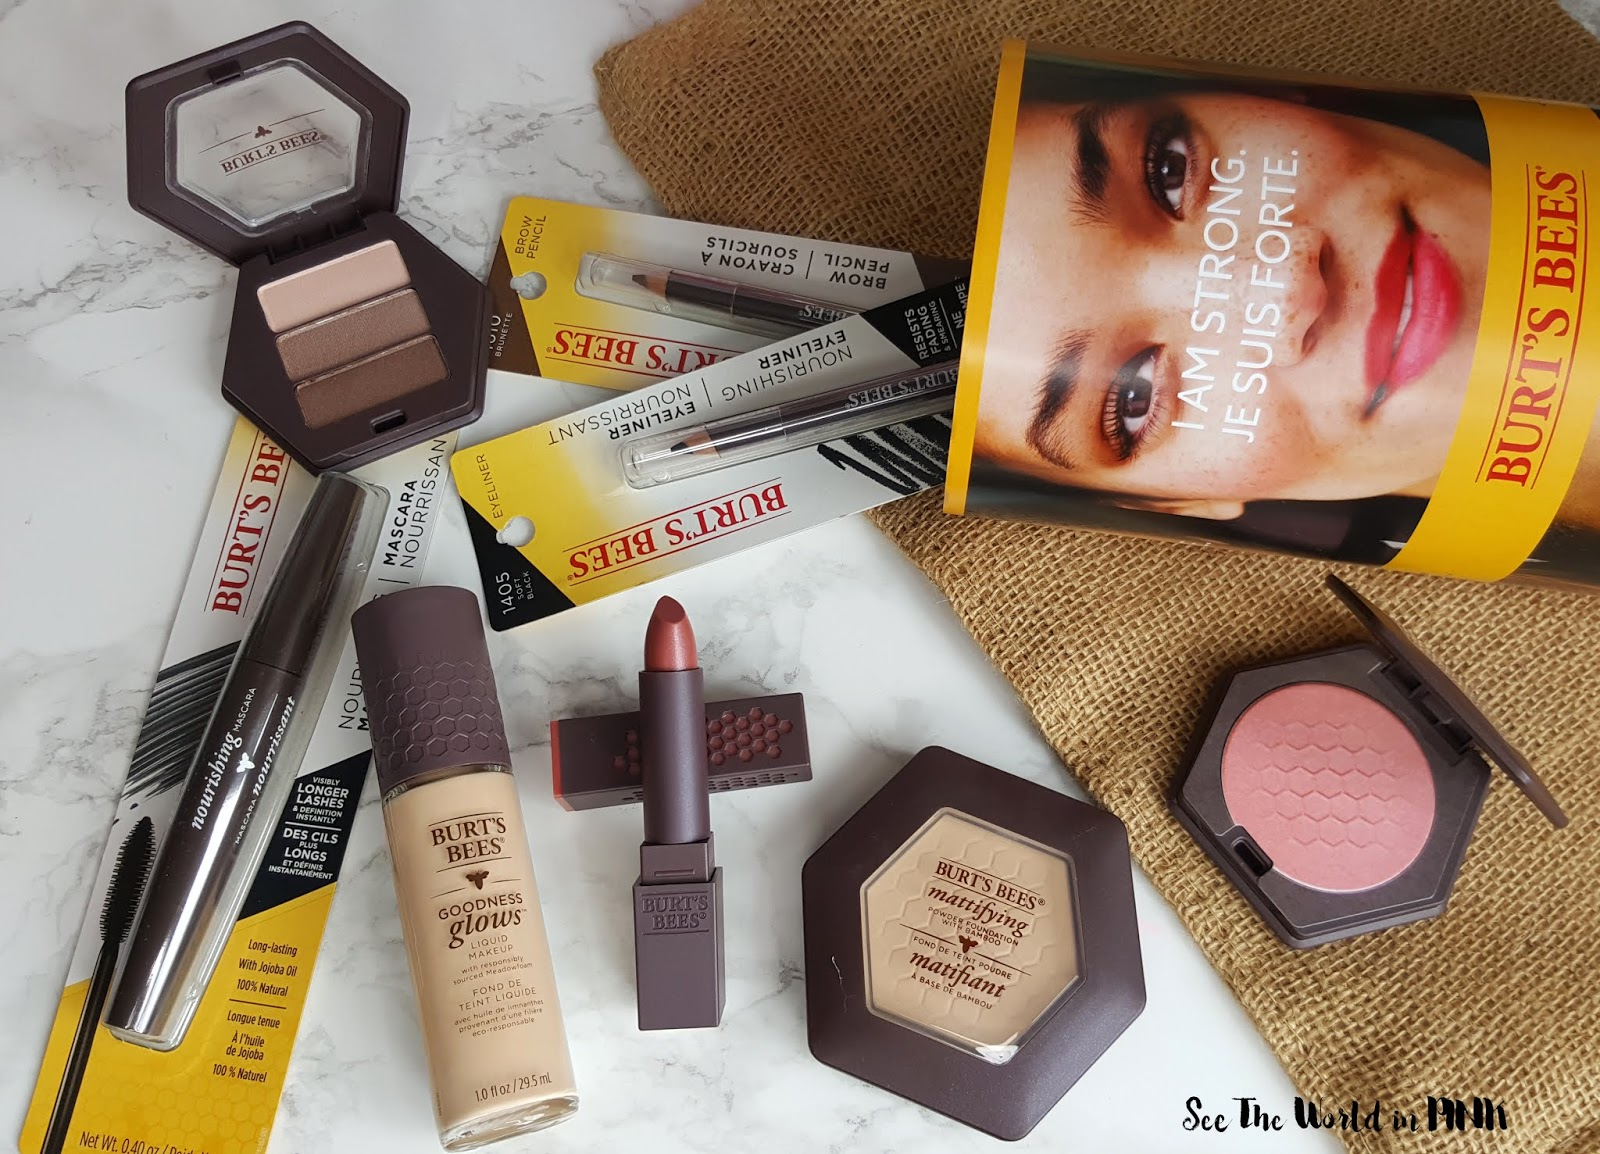 Full Face of Burt's Bees Makeup Try-on and Review!